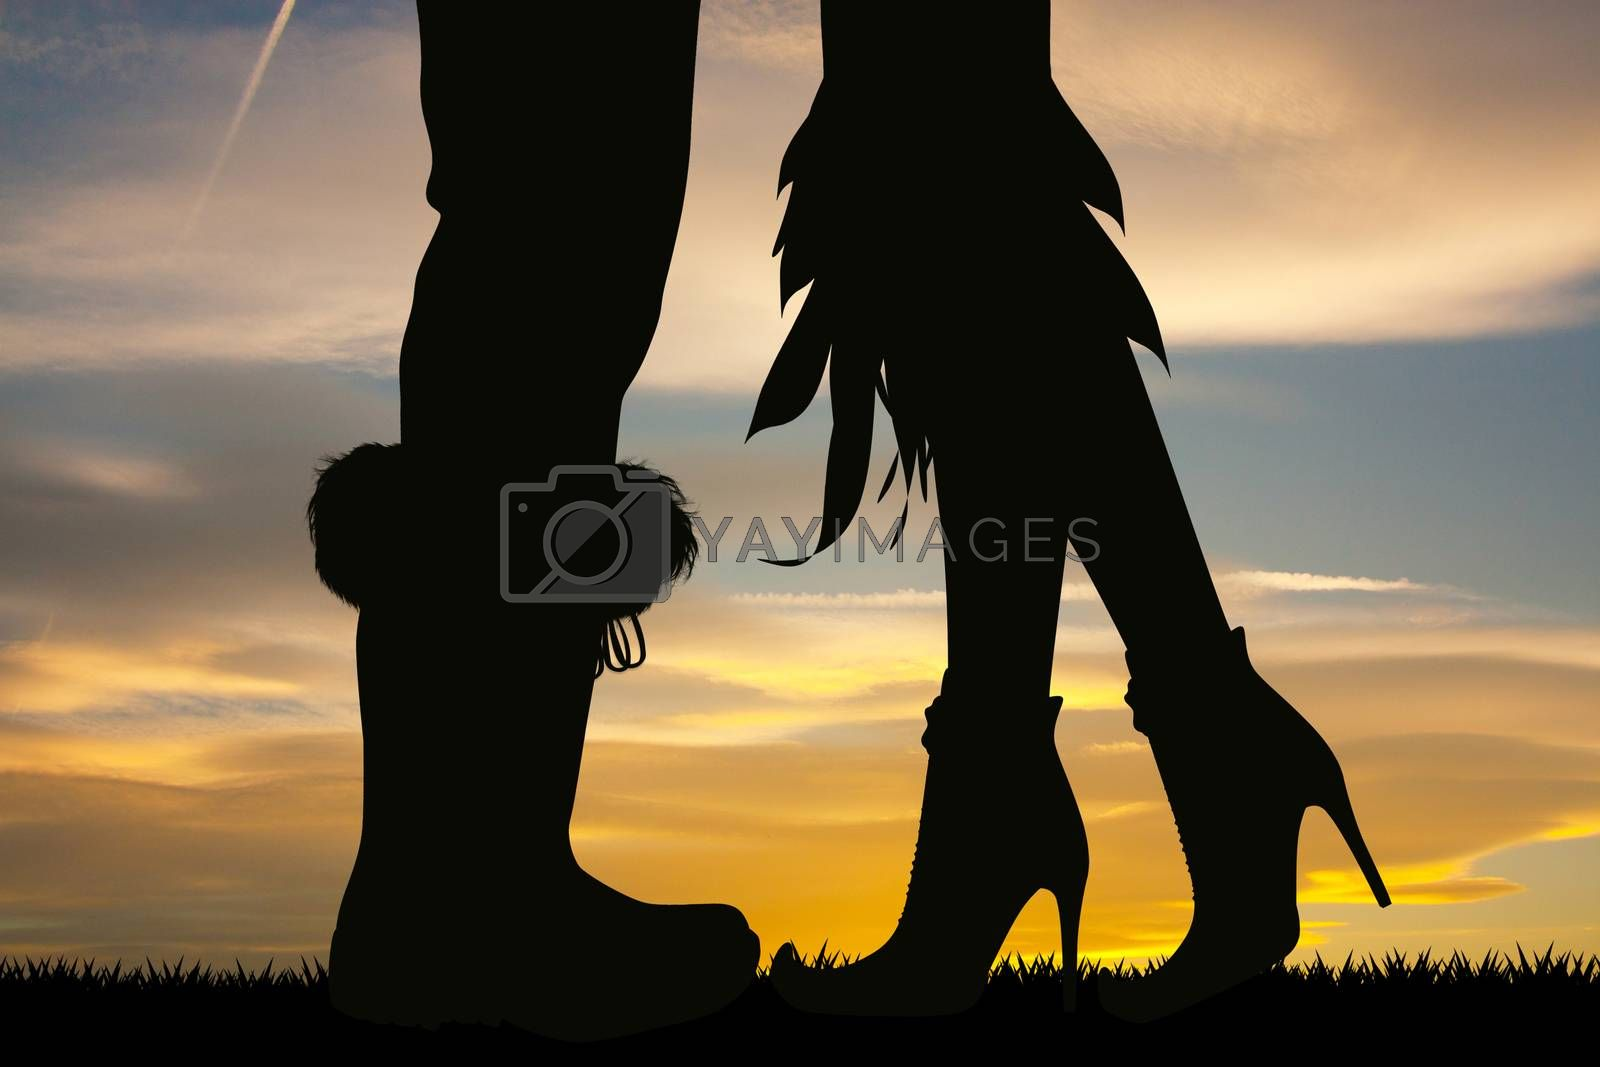 illustration of silhouette of witches and Santa's legs